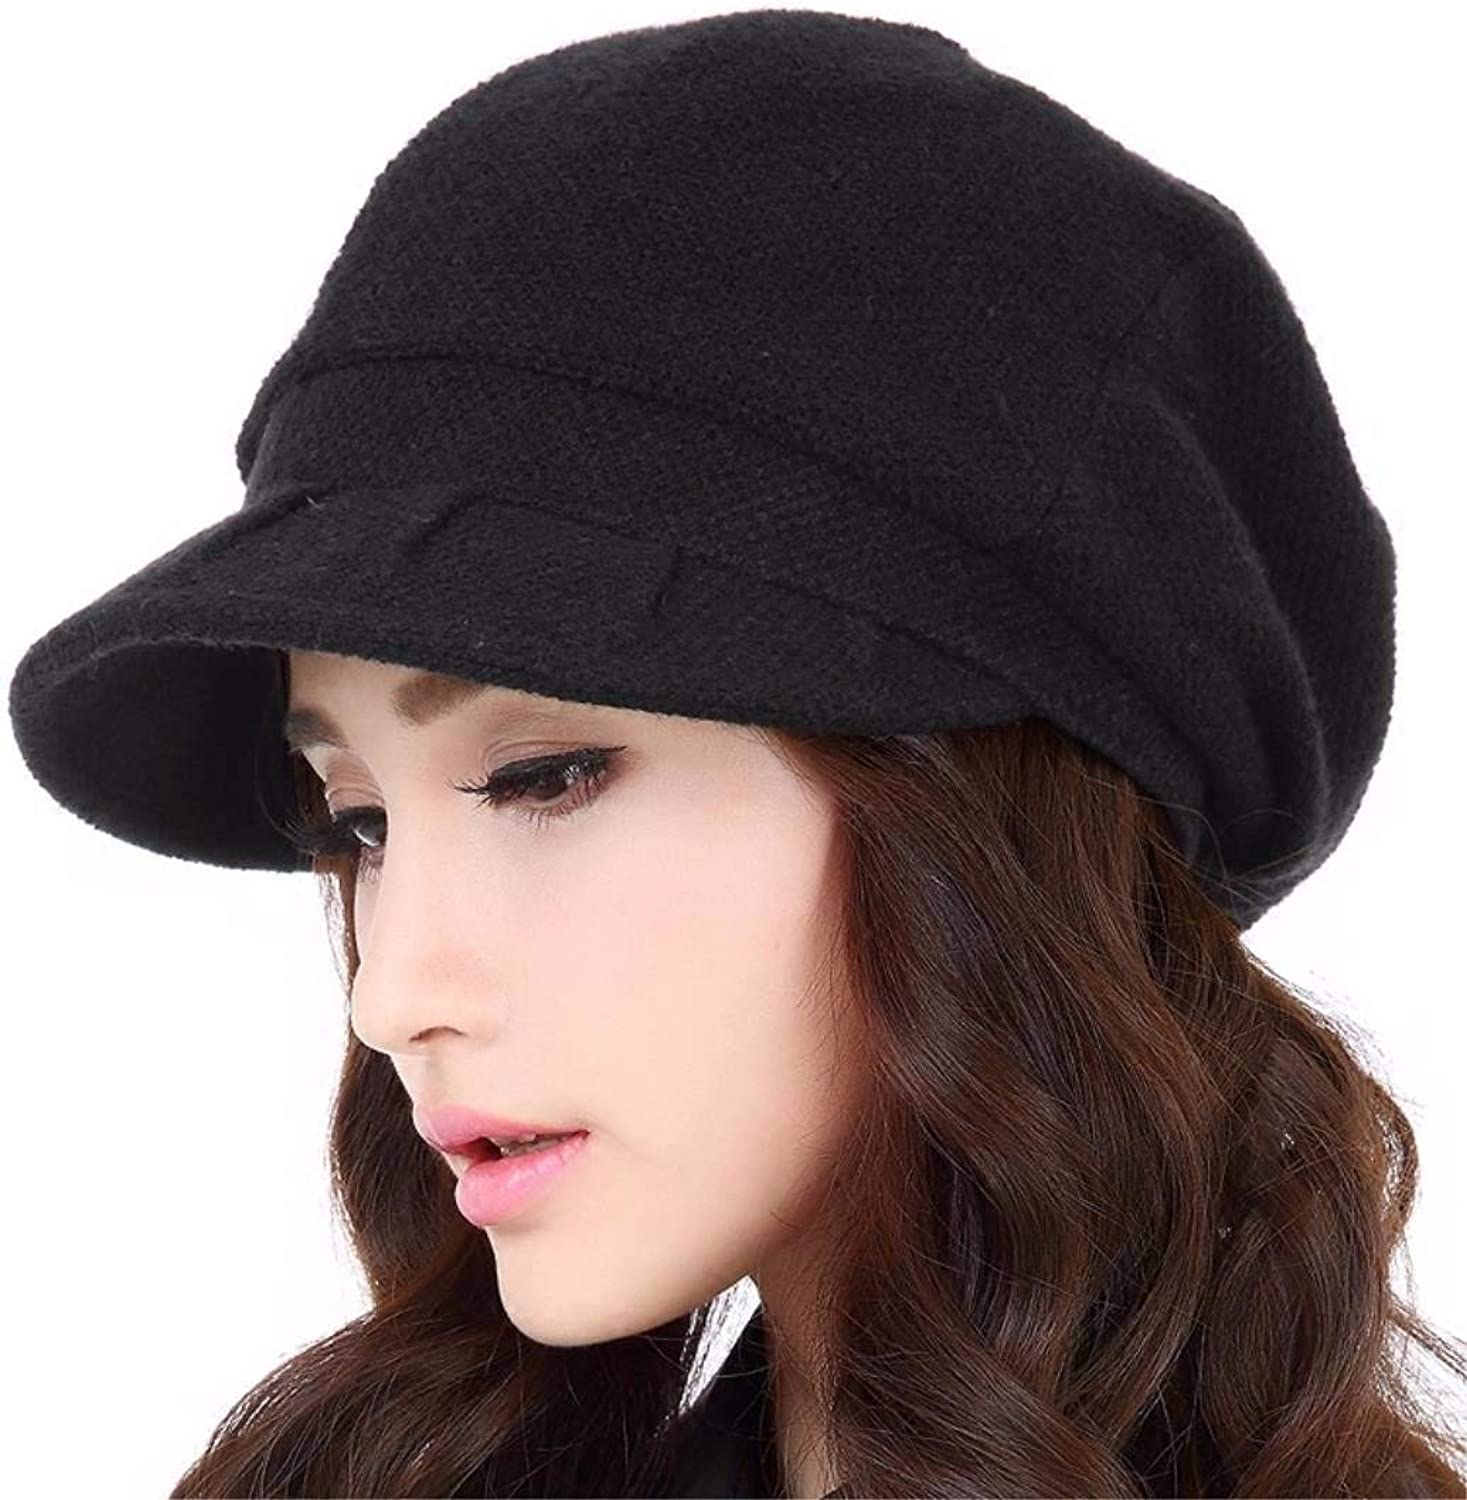 Dingkun During the spring and autumn days Fashion Cap knitting cap female autumn and winter Knitted Hats